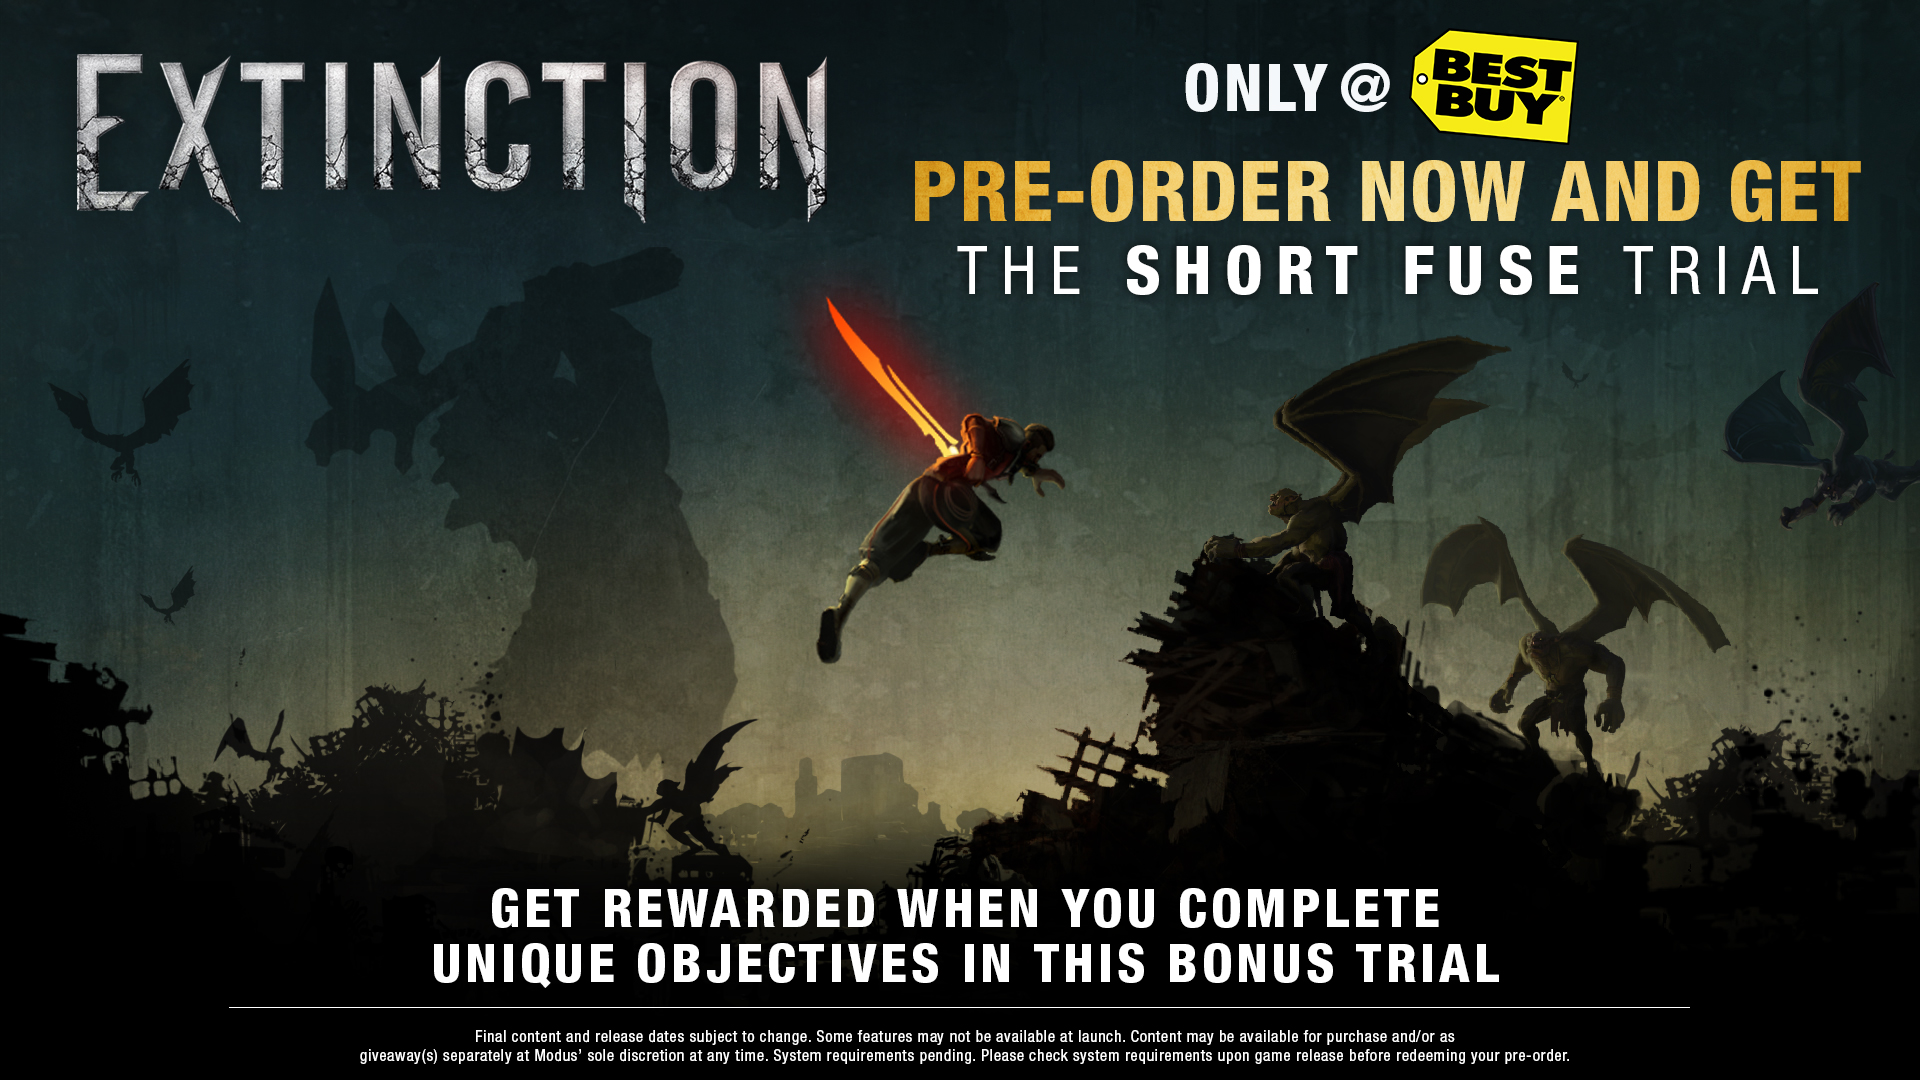 Extinction - Best Buy pre-order incentive